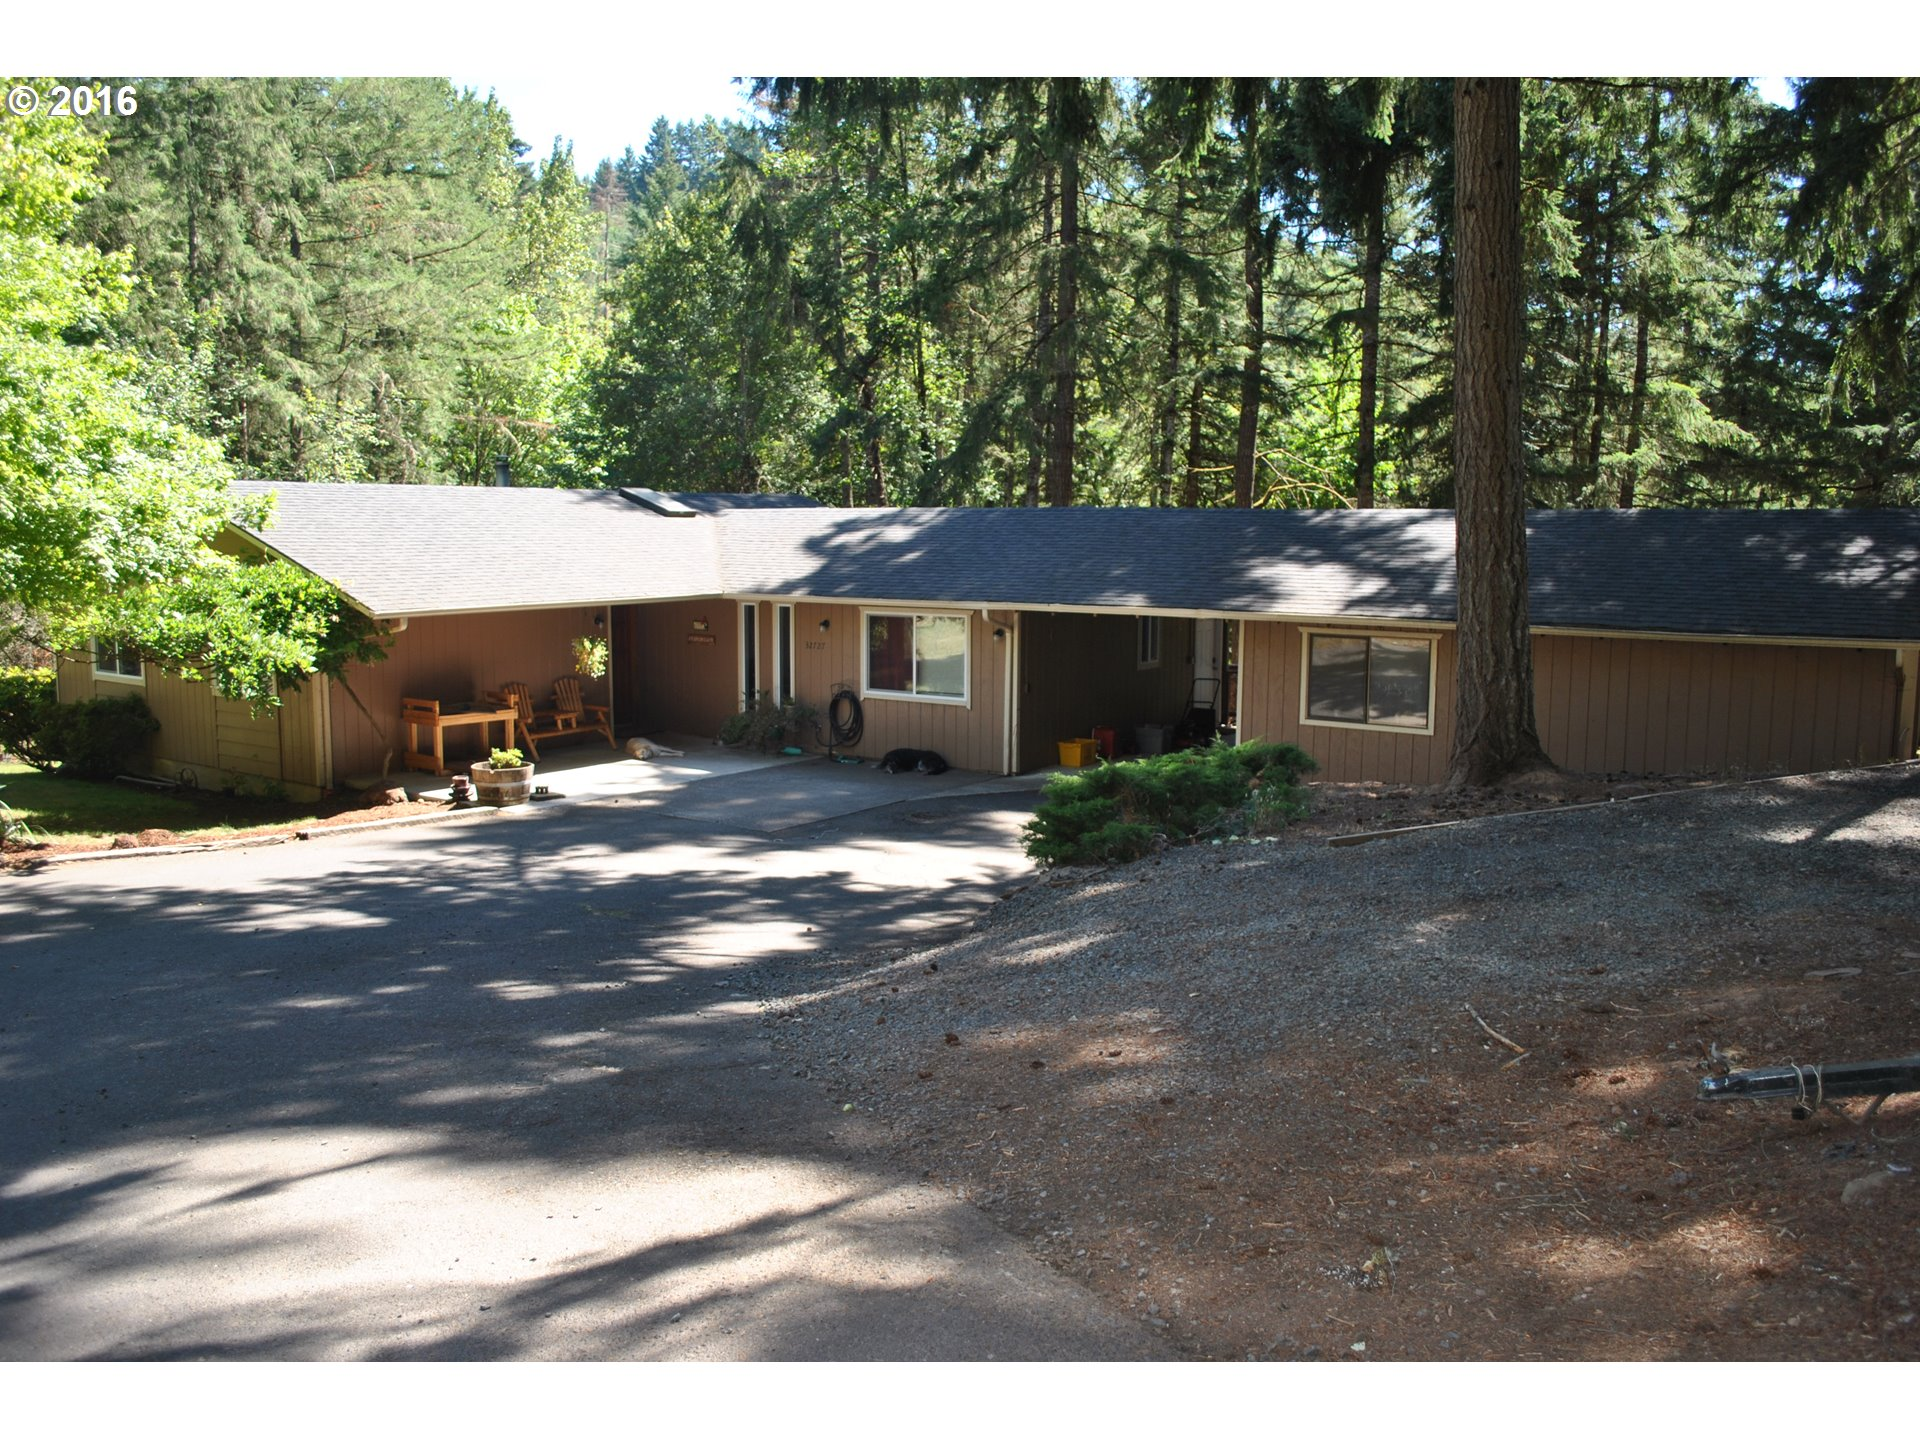 32727 TAYLOR BUTTE RD, Cottage Grove, OR 97424